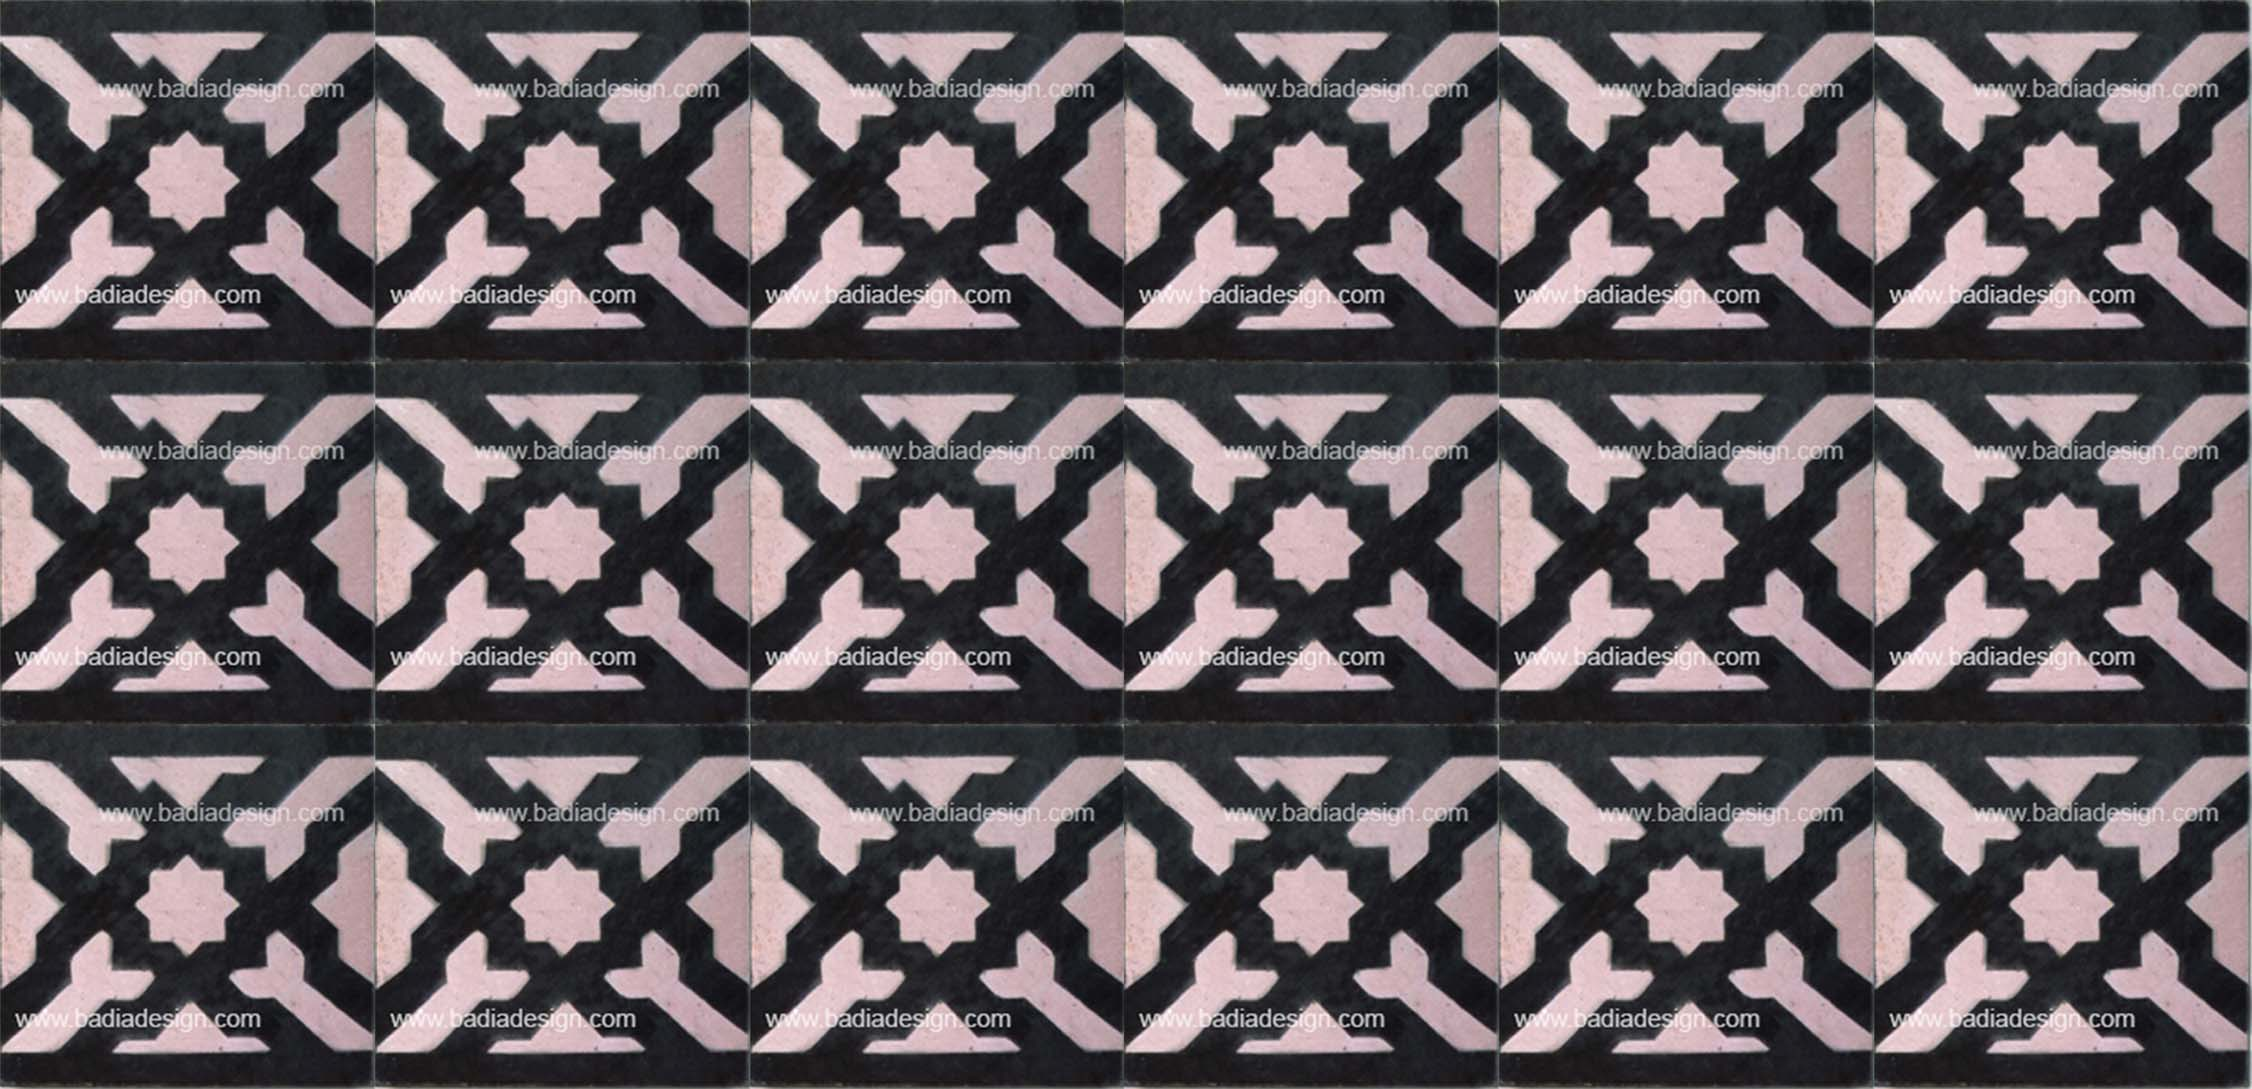 moroccan-hand-chiseled-tile-cht017-2.jpg